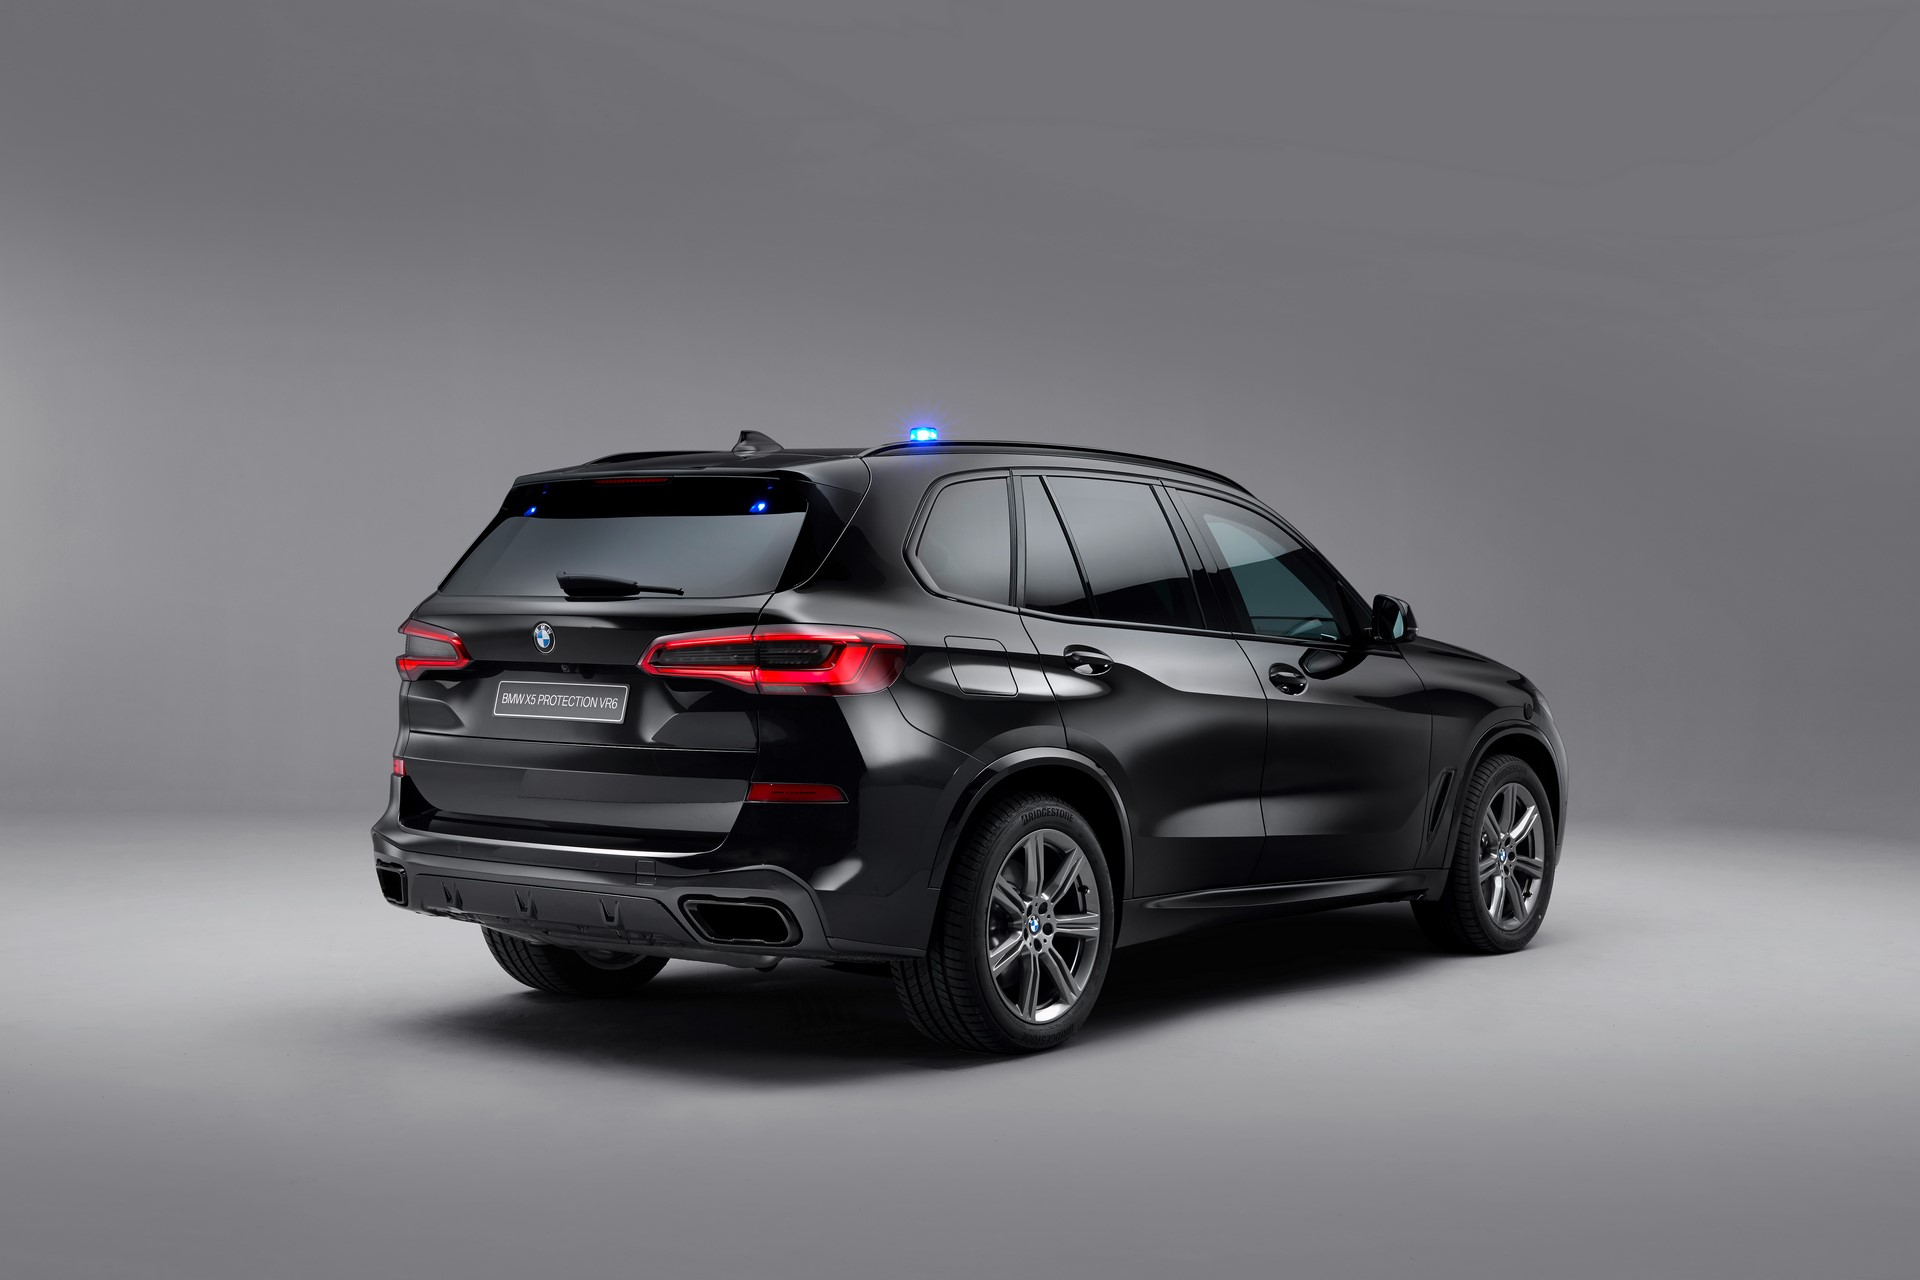 BMW-X5-Protection-VR6-6